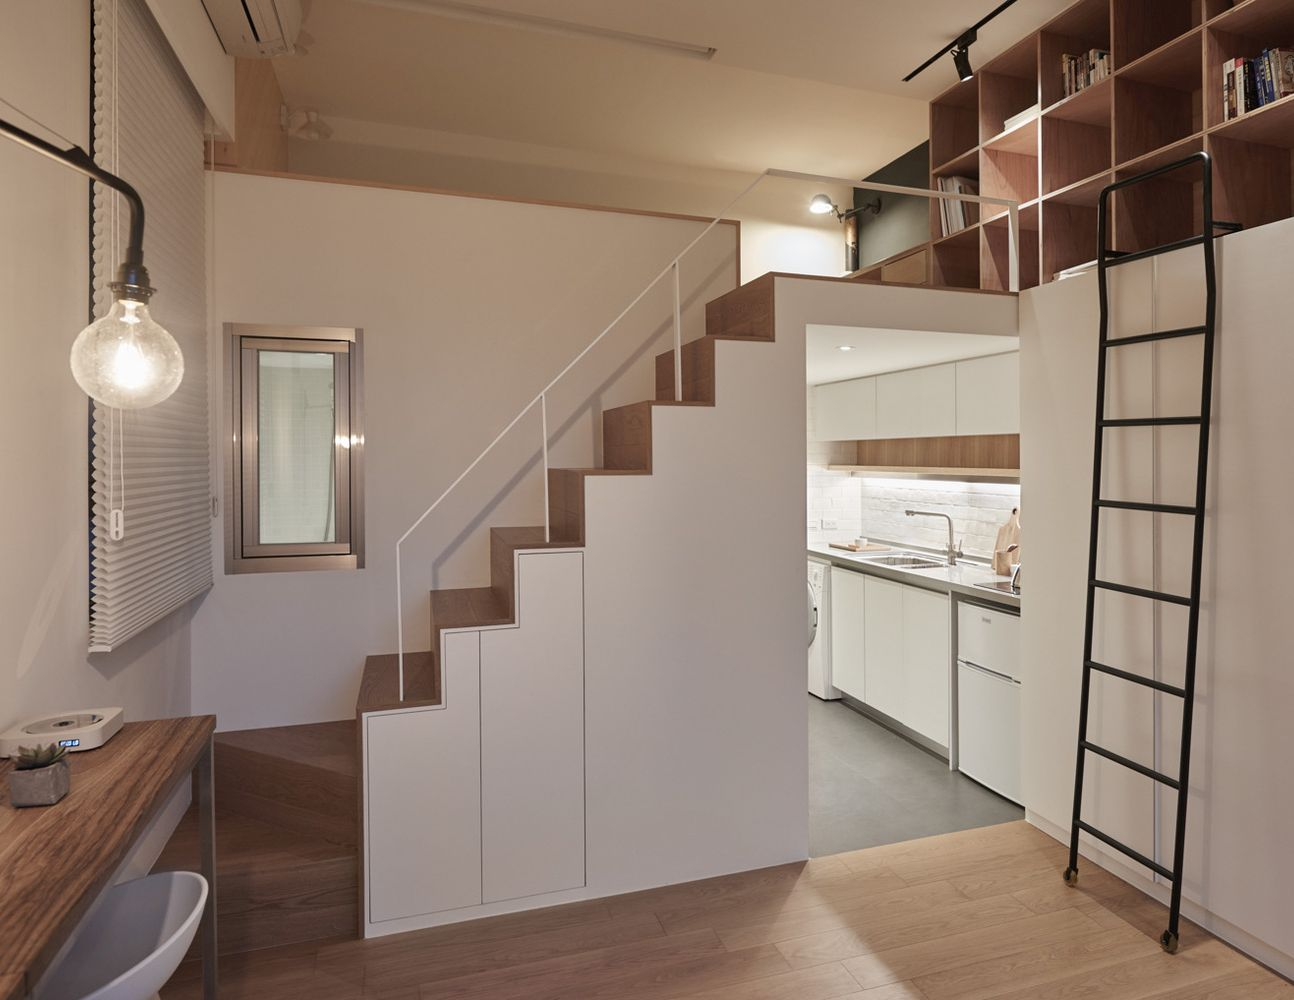 Interior Design On 22 Square Meters  Solutions From